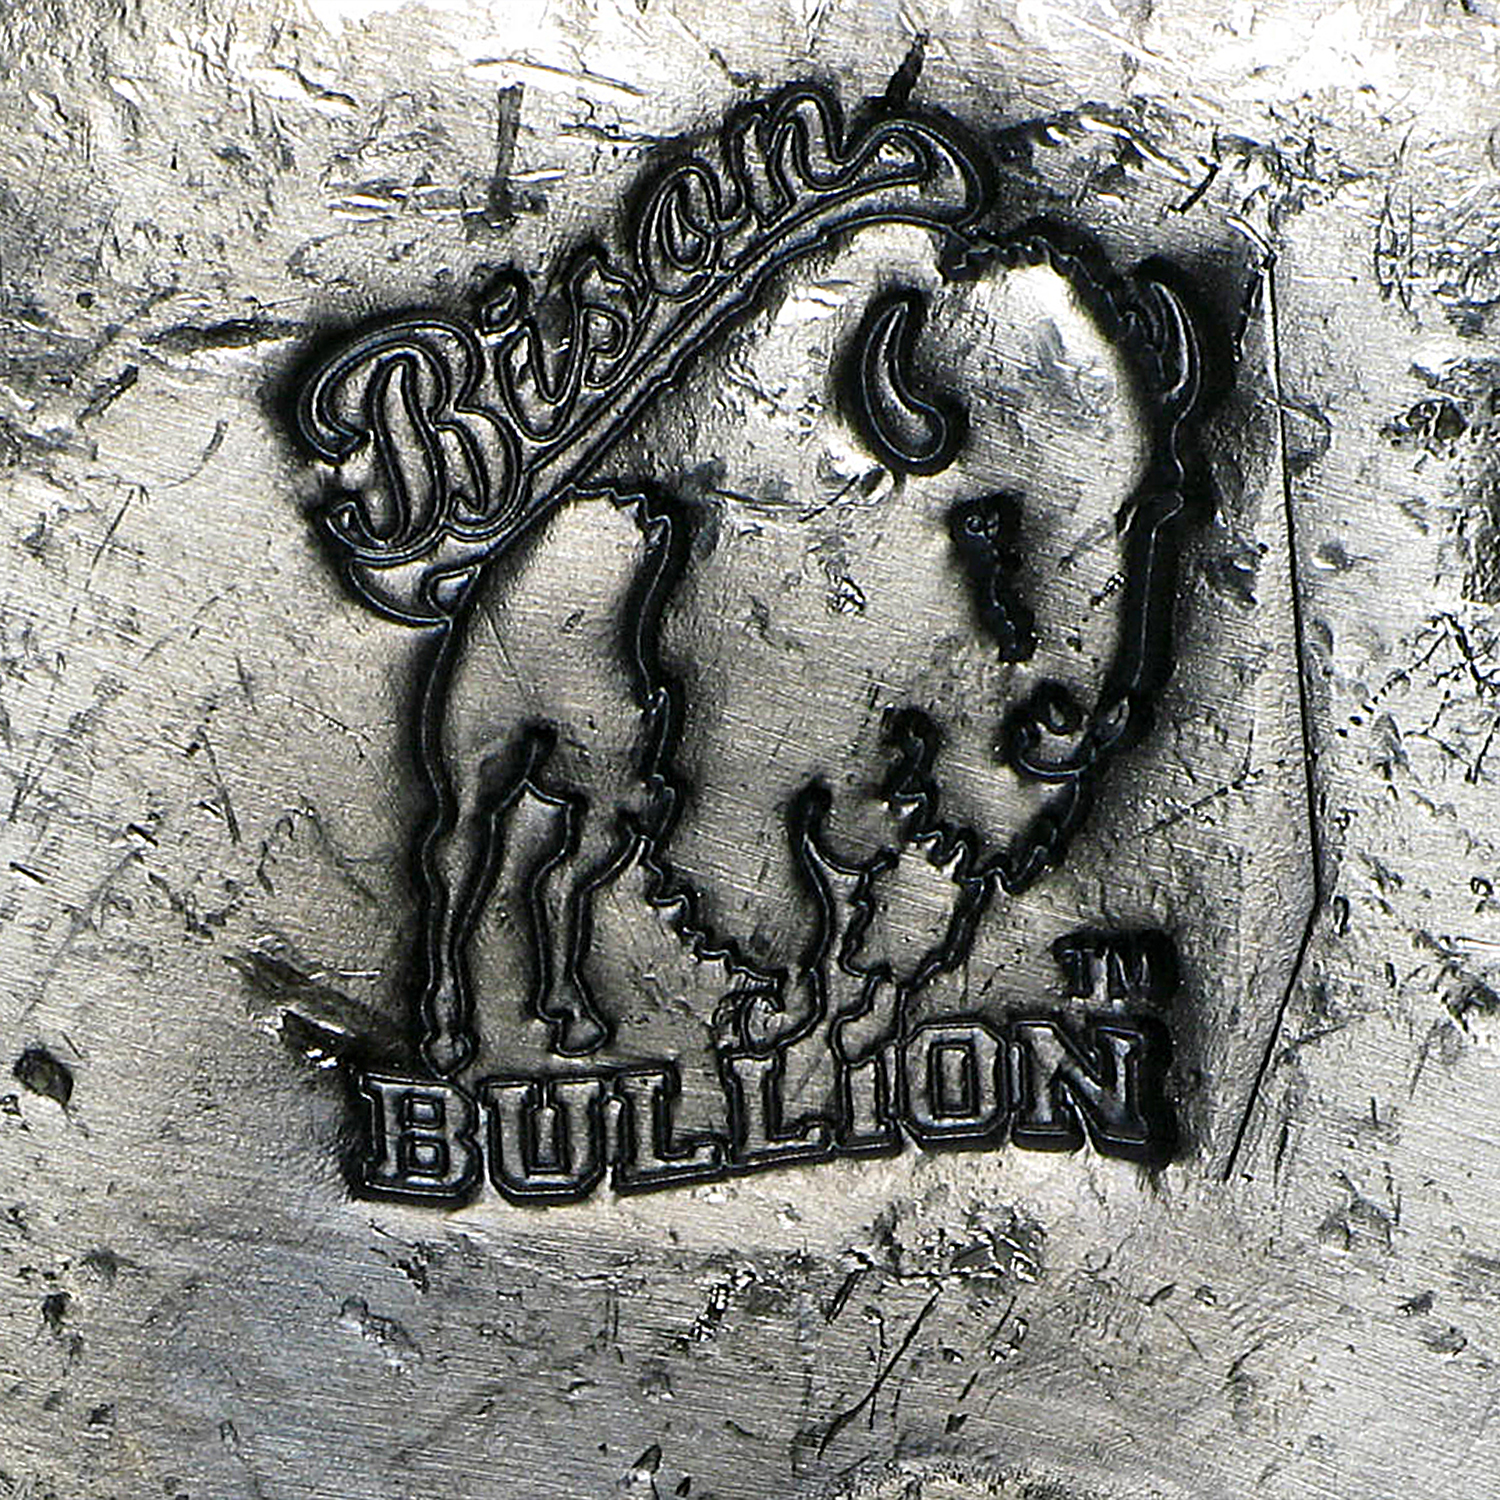 10 oz Silver Arrow Head - Bison Bullion